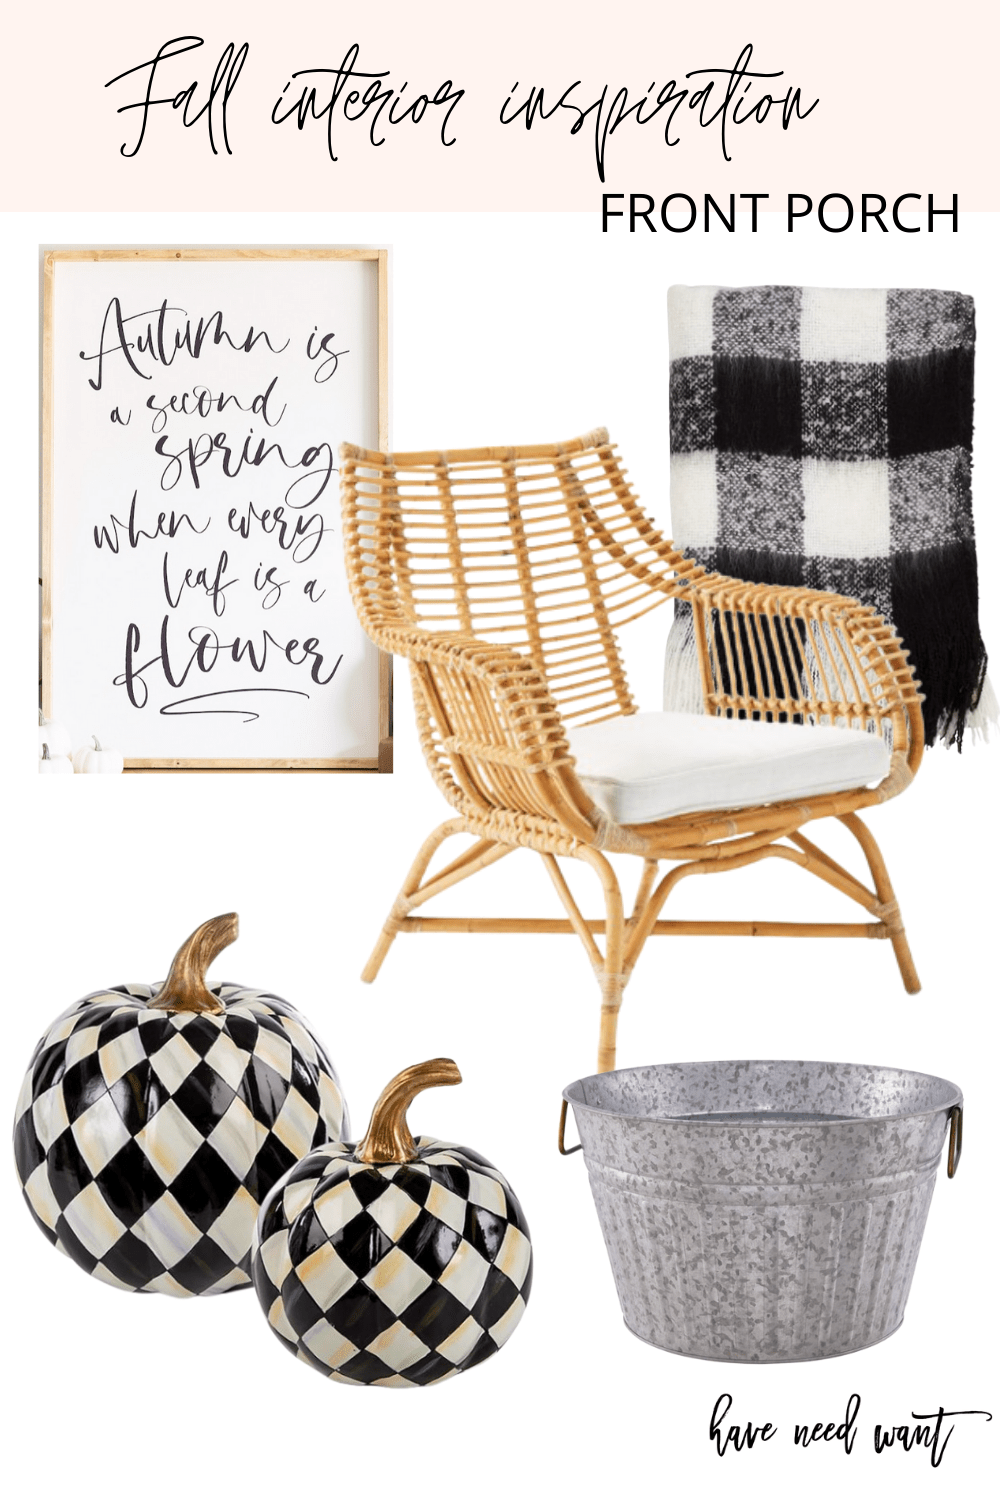 Fall front porch inspiration and decor. Buffalo check throw blanket, woven accent chair, Mackenzie Childs pumpkin accents for a chic fall porch.